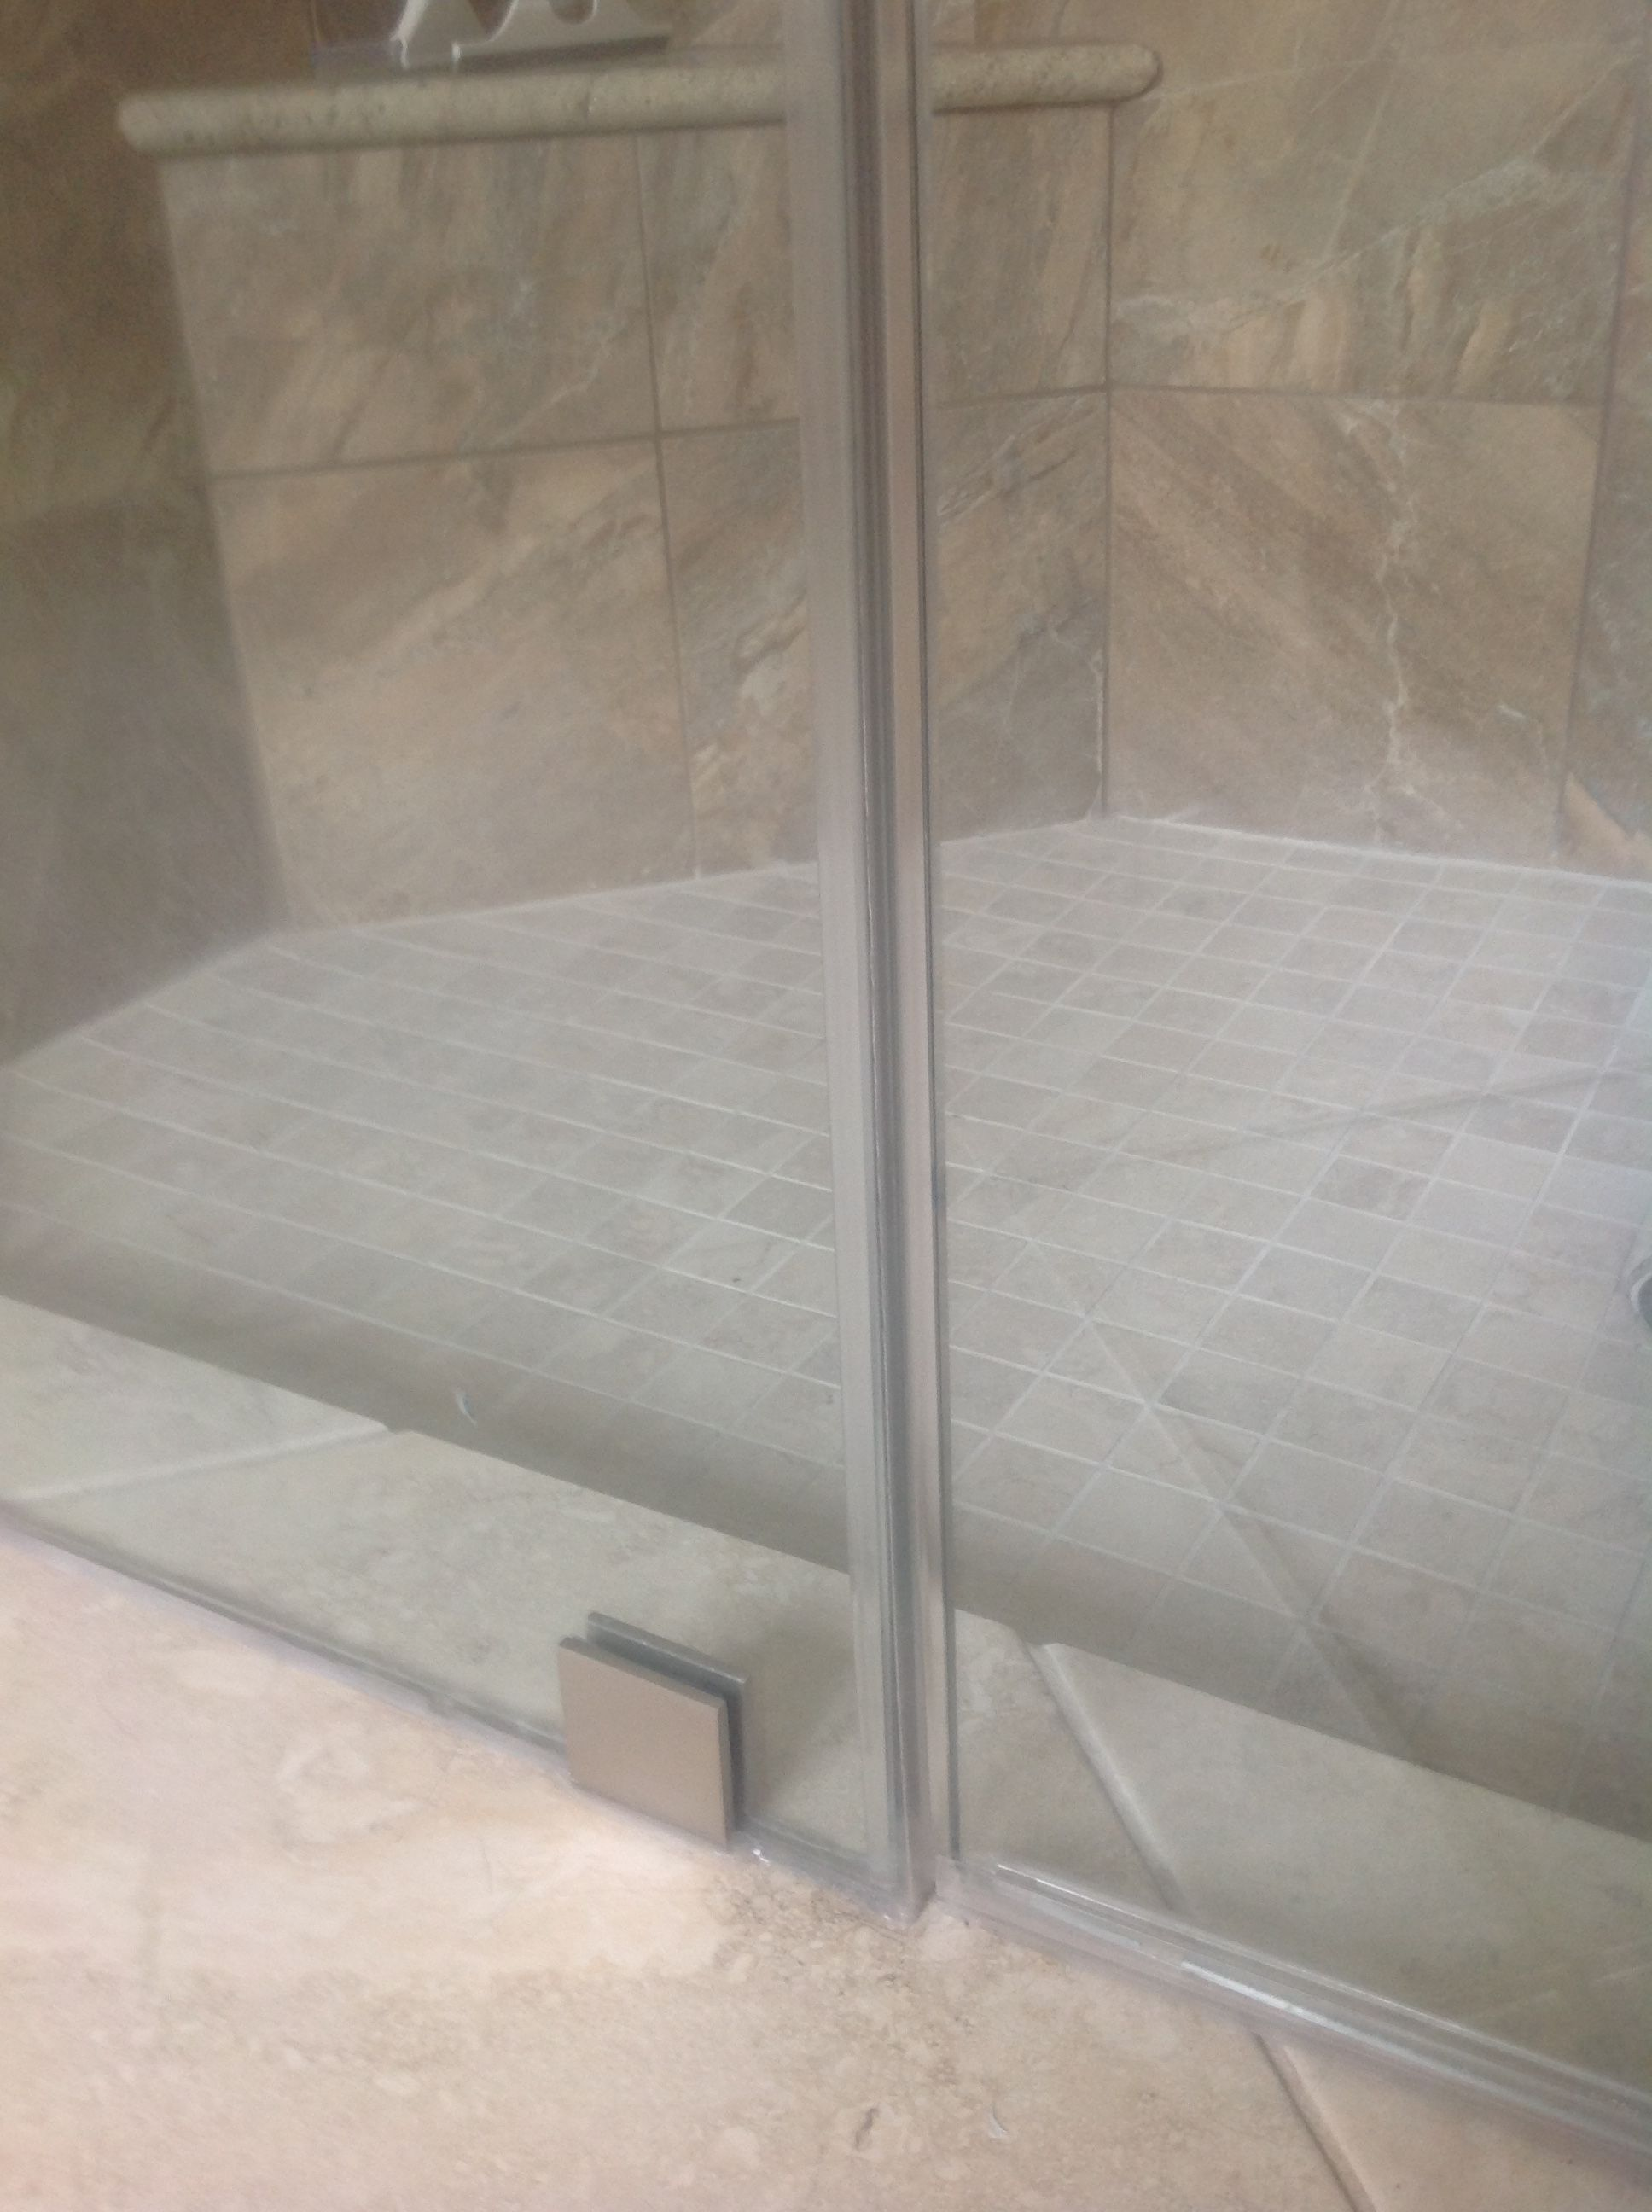 Frameless Shower Door Seal Strip | http://sourceabl.com | Pinterest